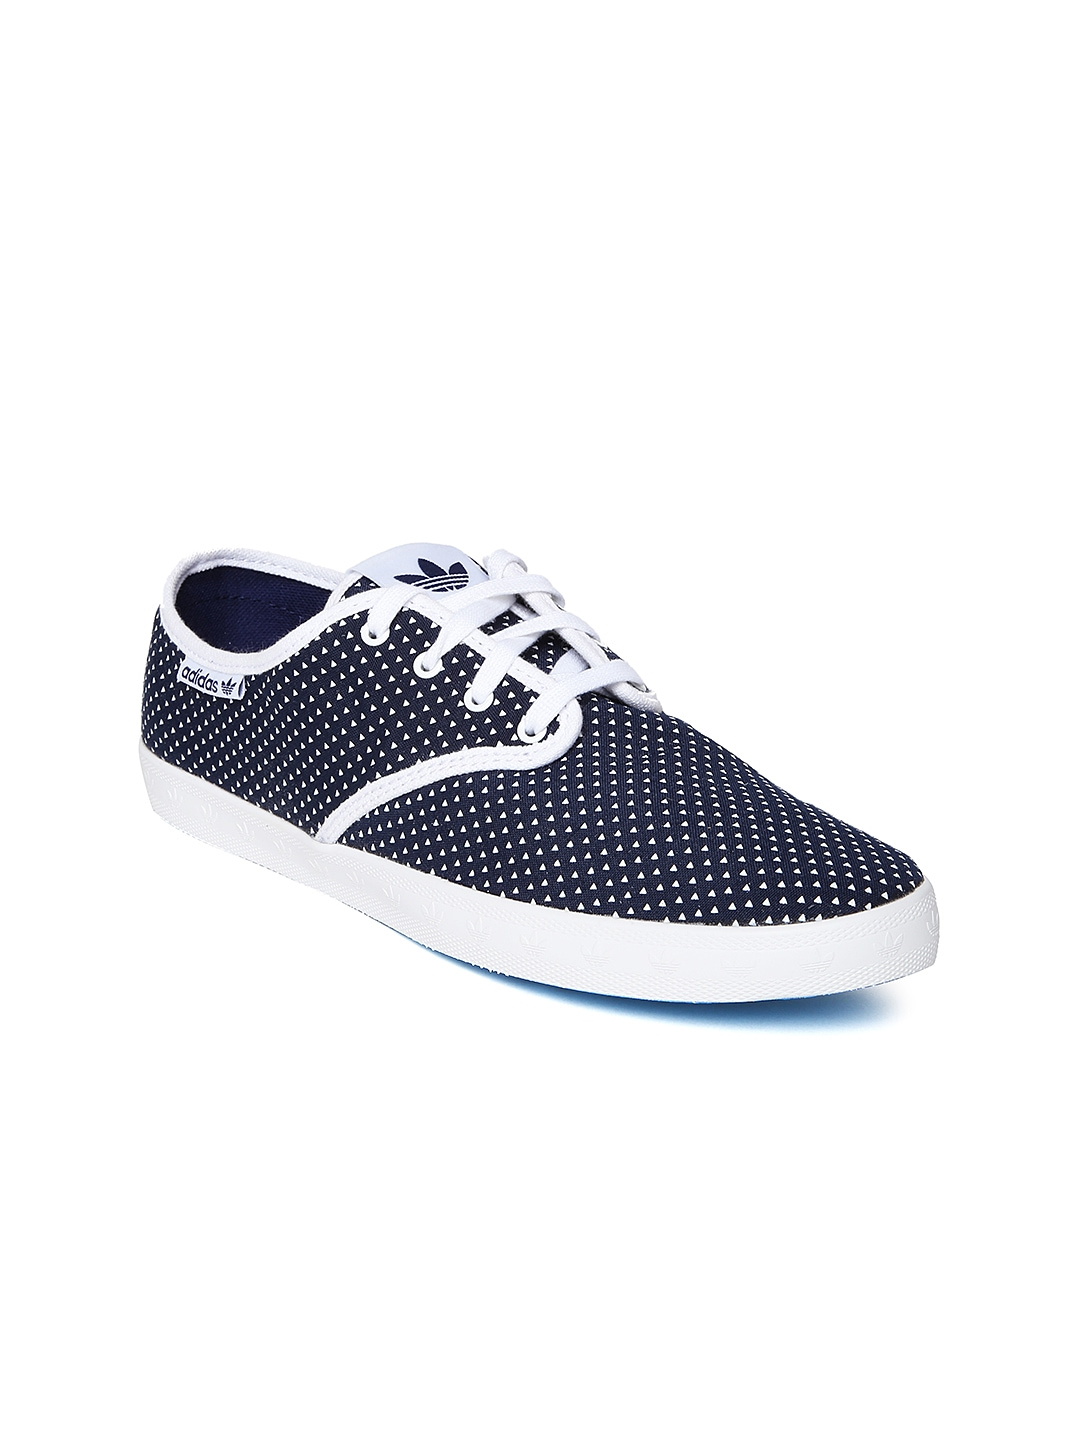 myntra adidas originals navy white printed adria